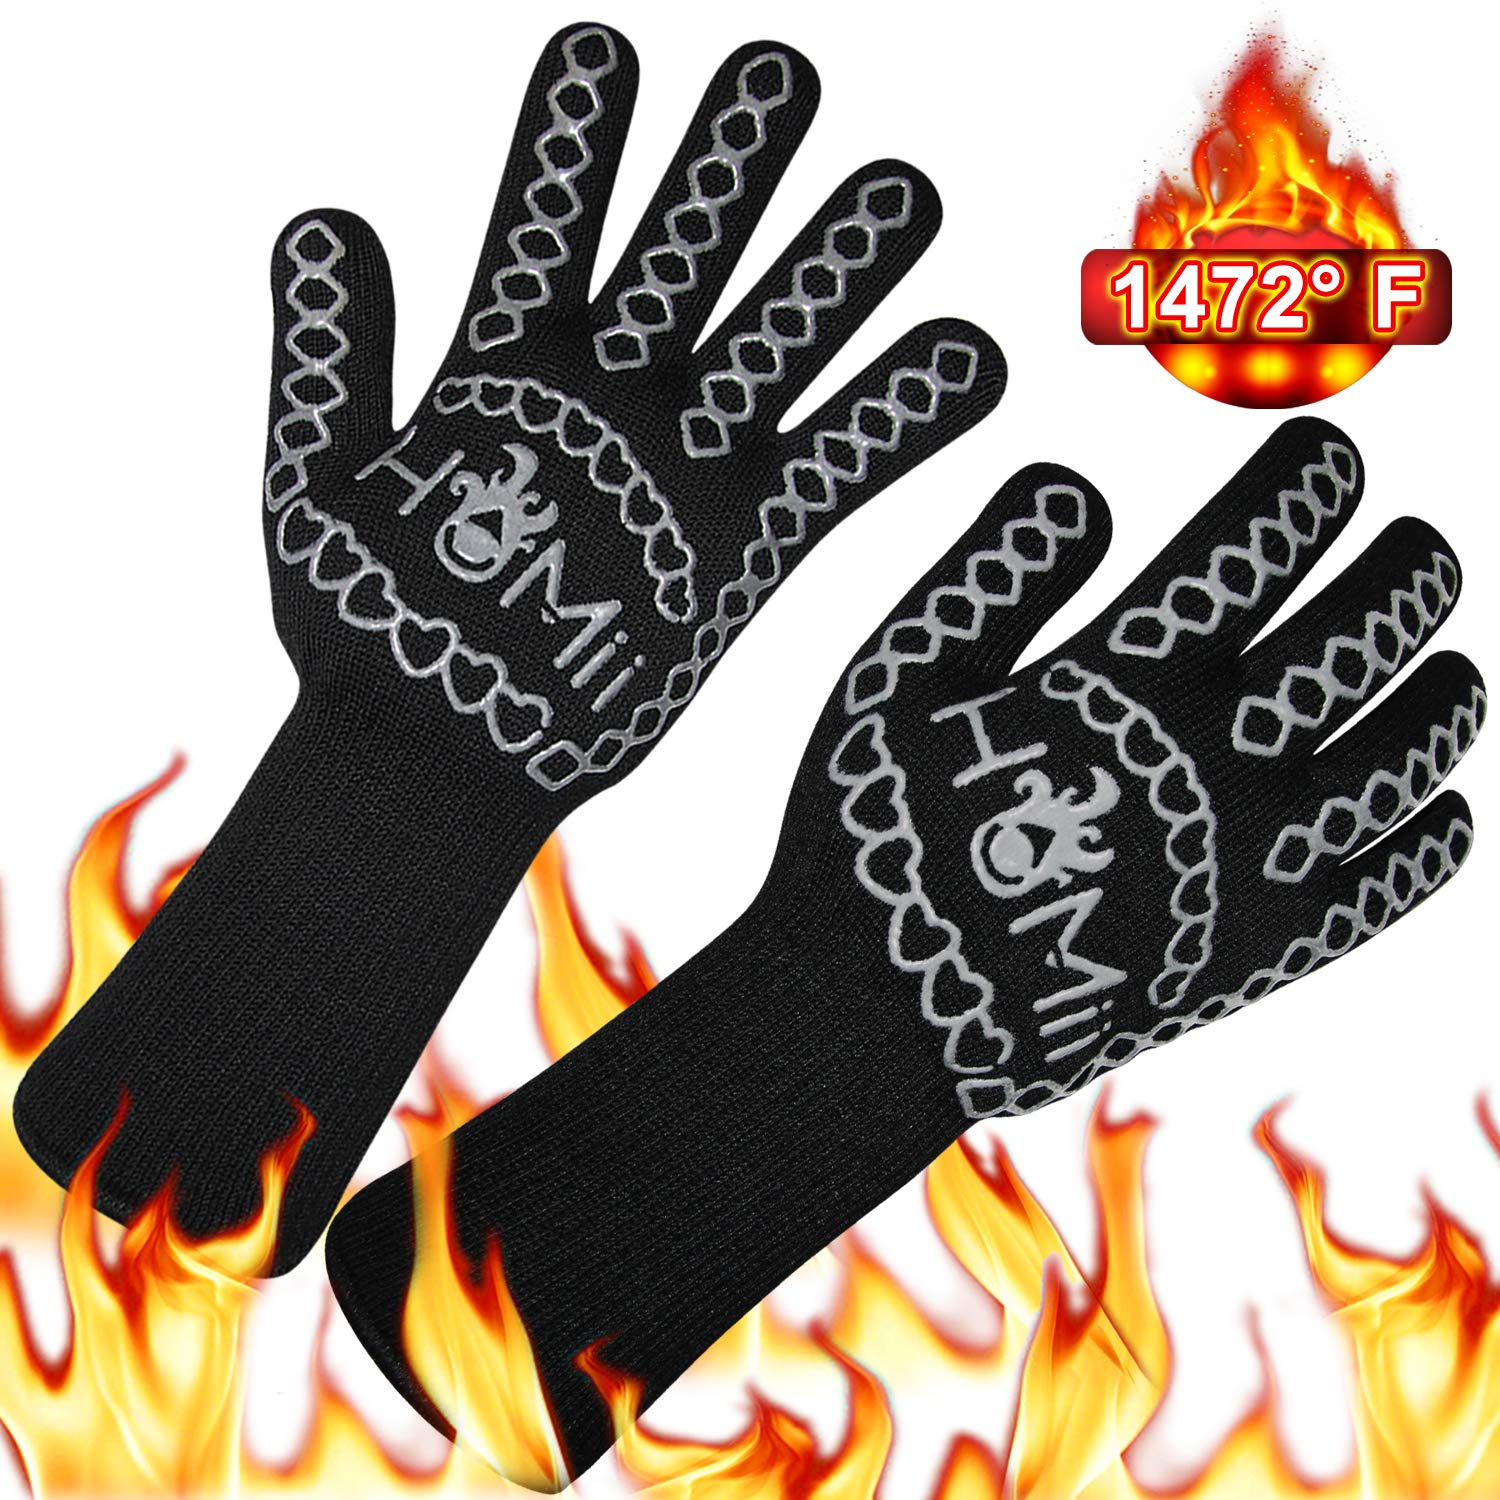 HoMii BBQ Gloves 1472℉ Extreme Heat Resistant, Oven Silicone Glove Kitchen Oven Mitts Grilling Glove for Cooking, Kitchen, Baking, Fireplace, Grilling, 1 Pair (13 Inch) (1-Black) by HoMii